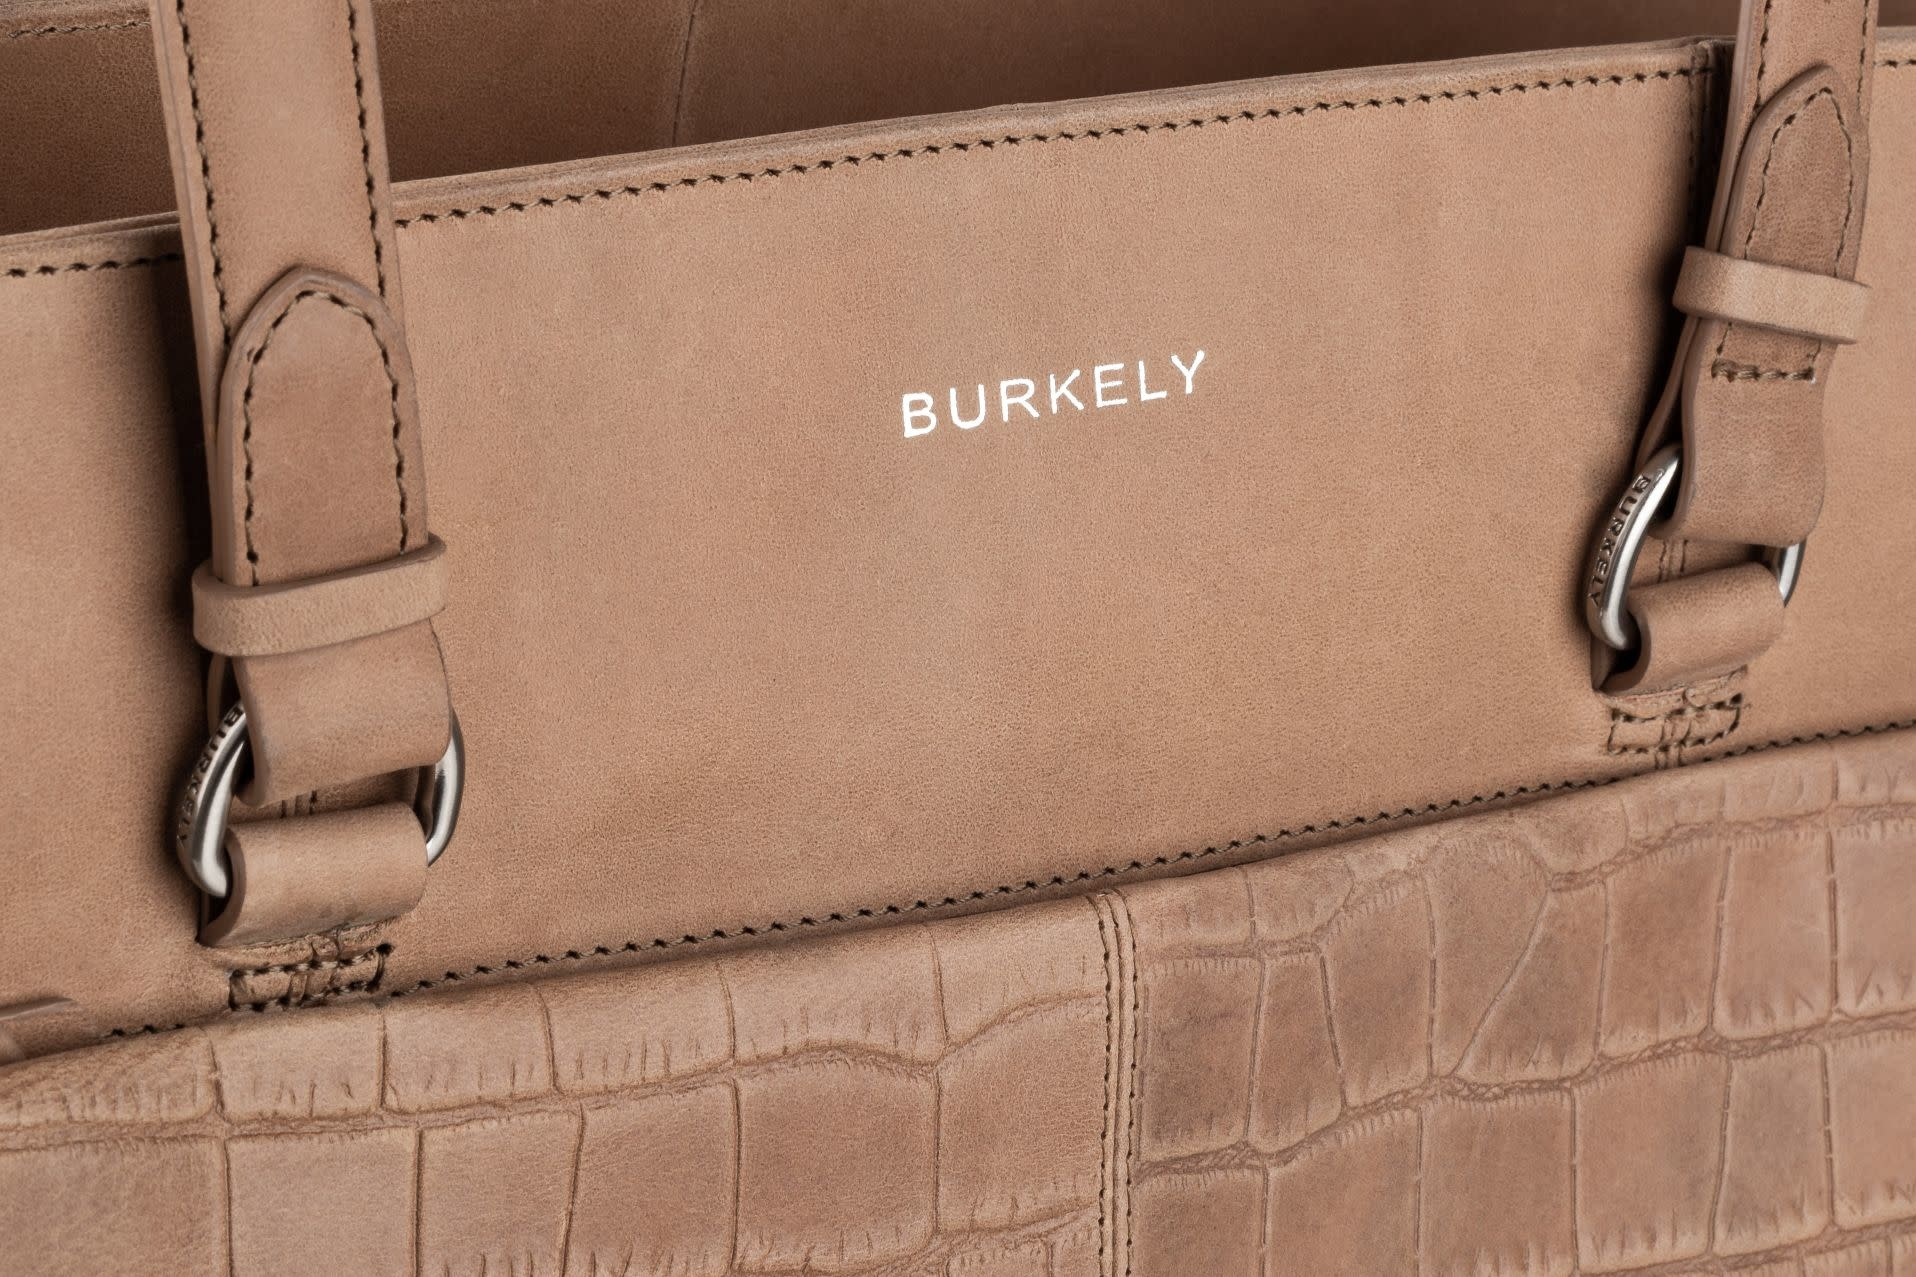 Burkely Croco Caia - Wallet M - Taupe